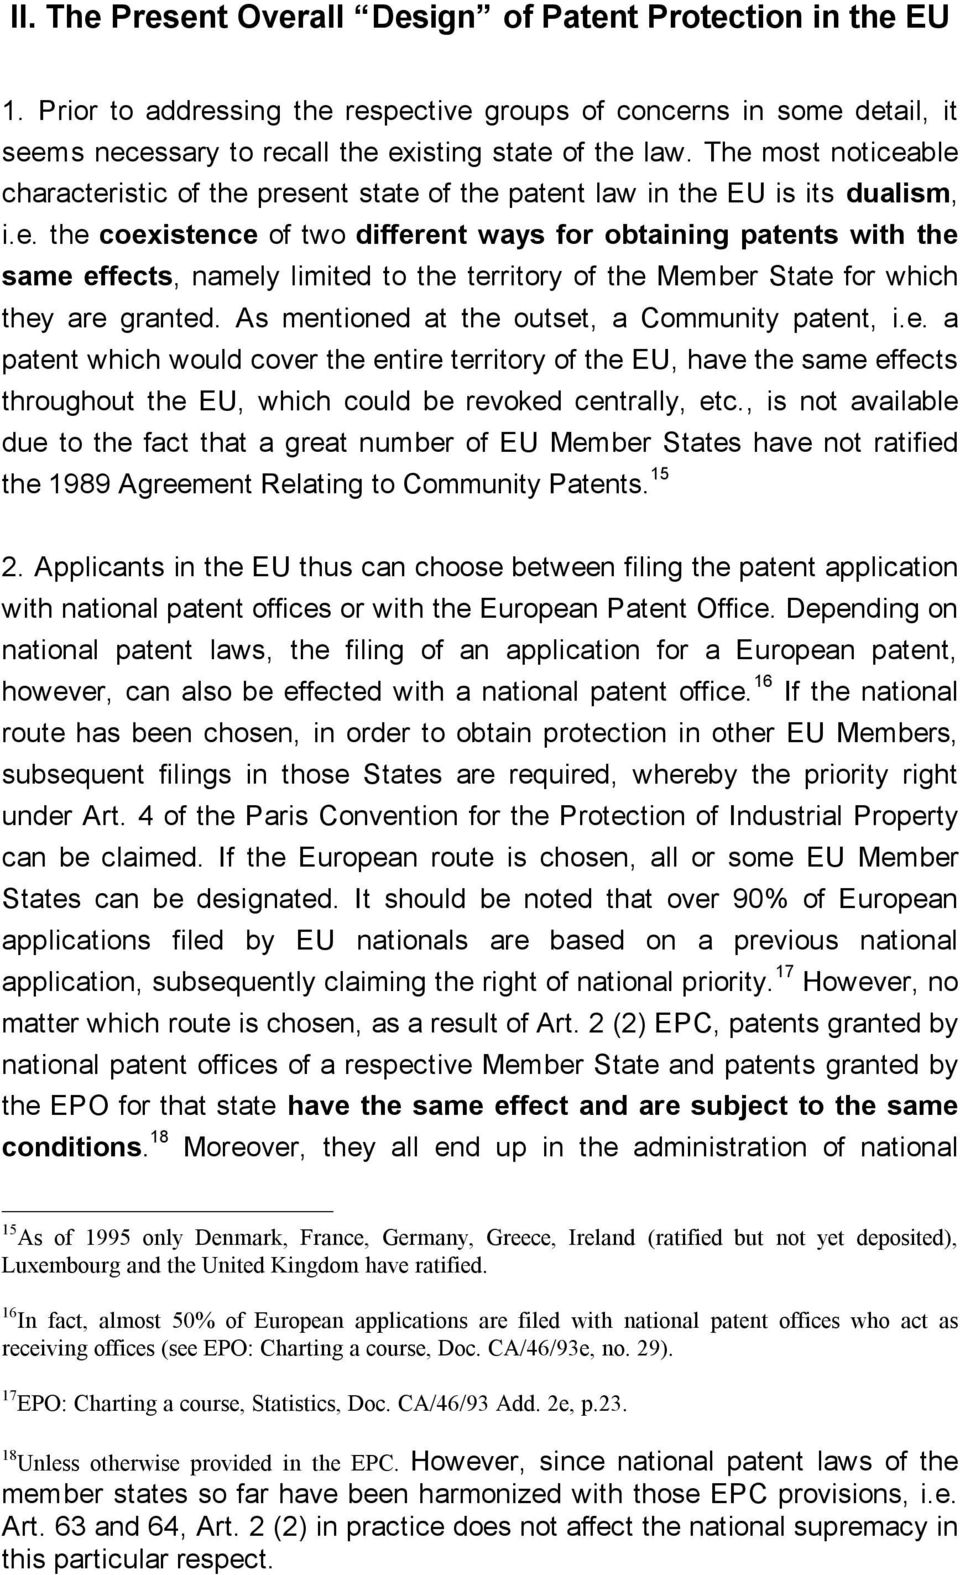 As mentioned at the outset, a Community patent, i.e. a patent which would cover the entire territory of the EU, have the same effects throughout the EU, which could be revoked centrally, etc.